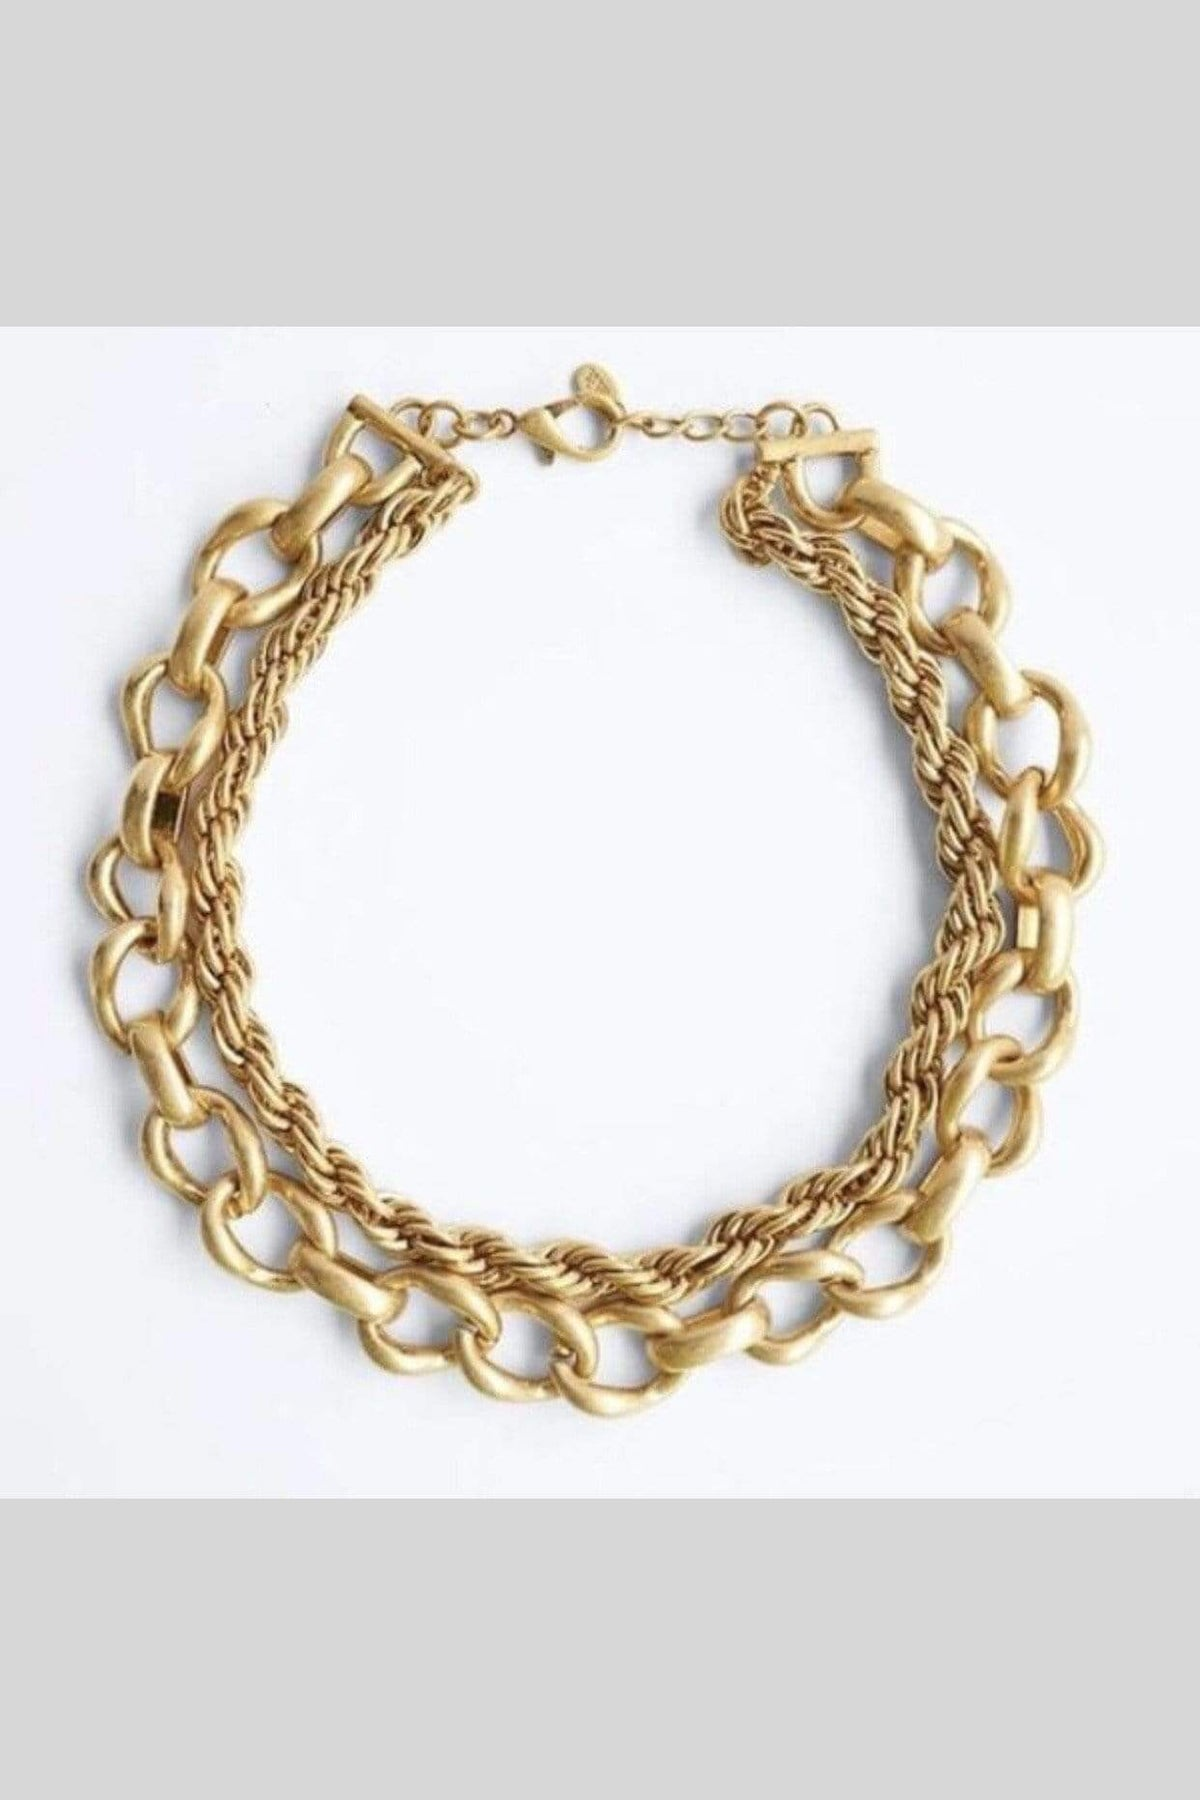 NECKLACE Gold Layered Collar Necklace - Chloe Dao